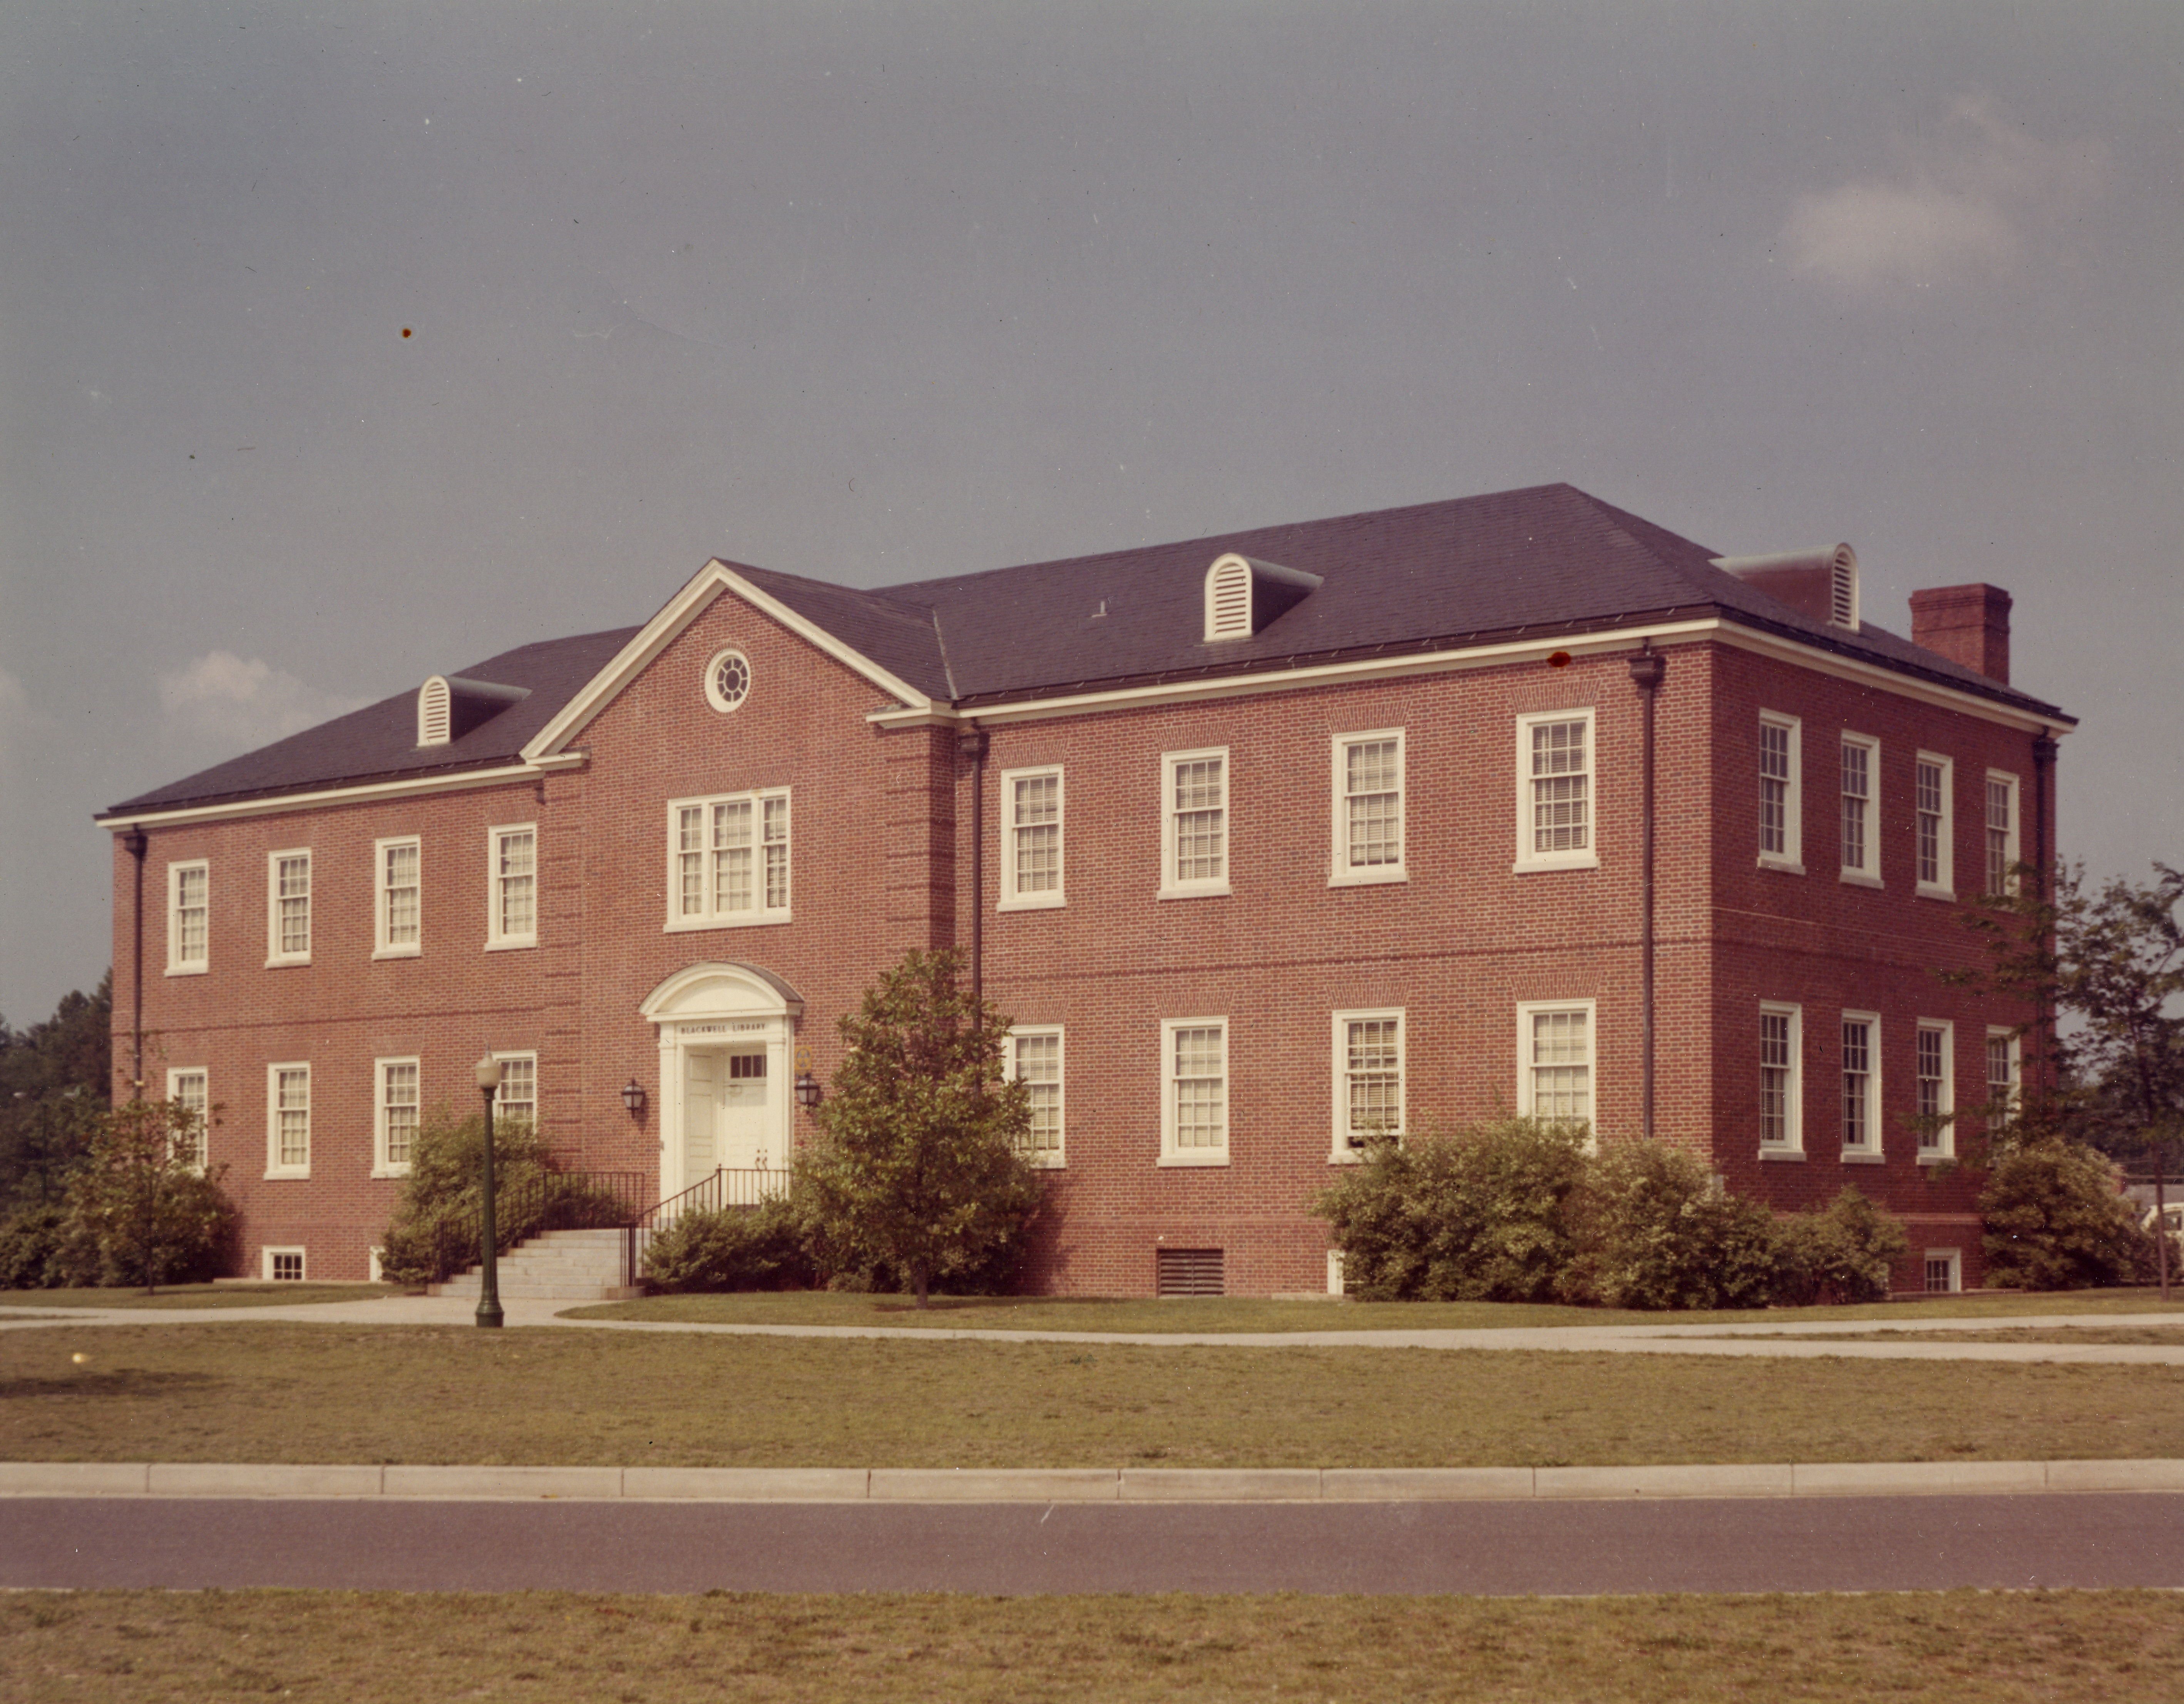 Original Blackwell Library, before 1969